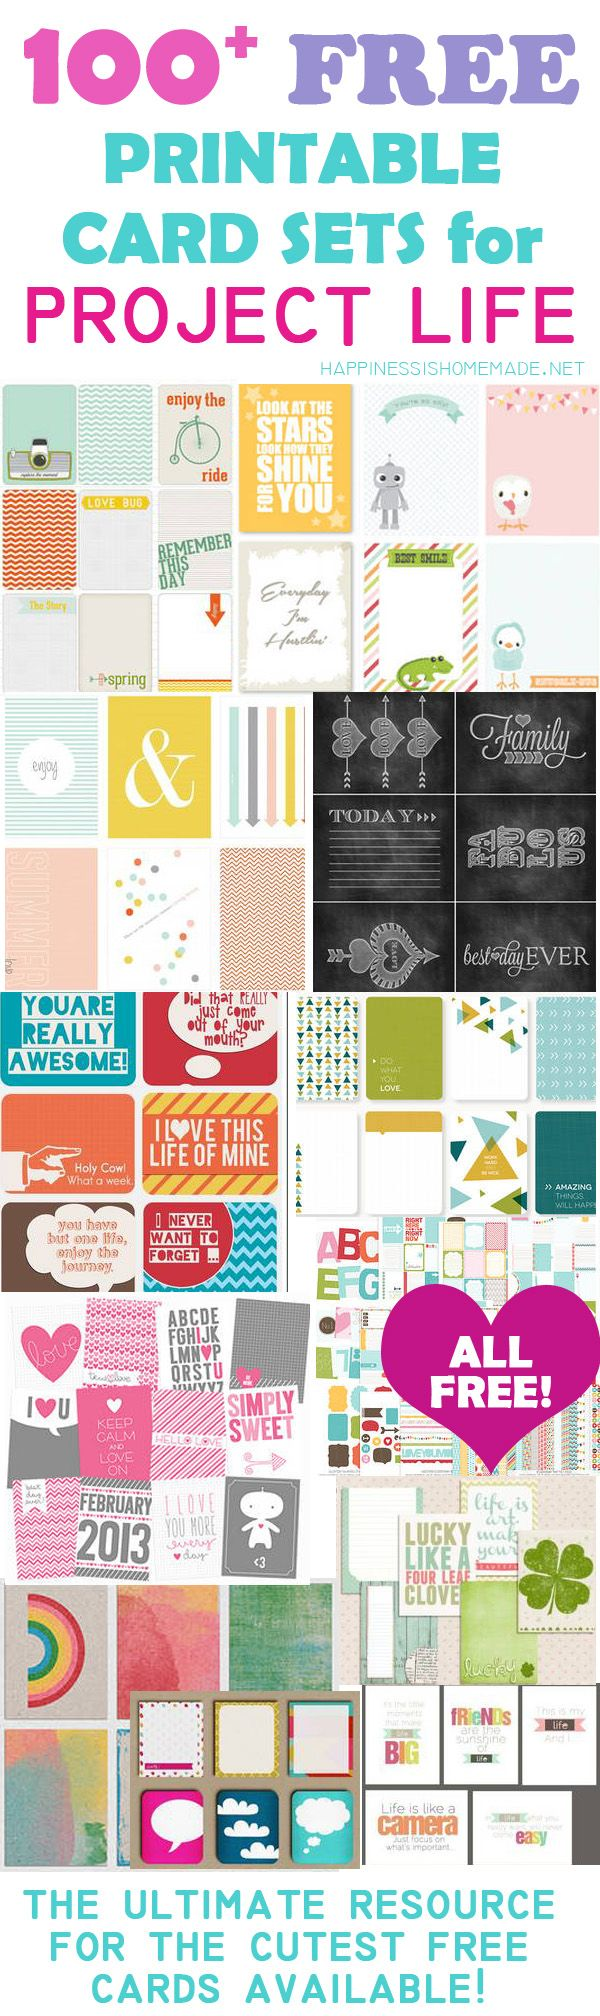 Over 100 SUPER cute and FREE Printable Project Life Cards! What a great resource!